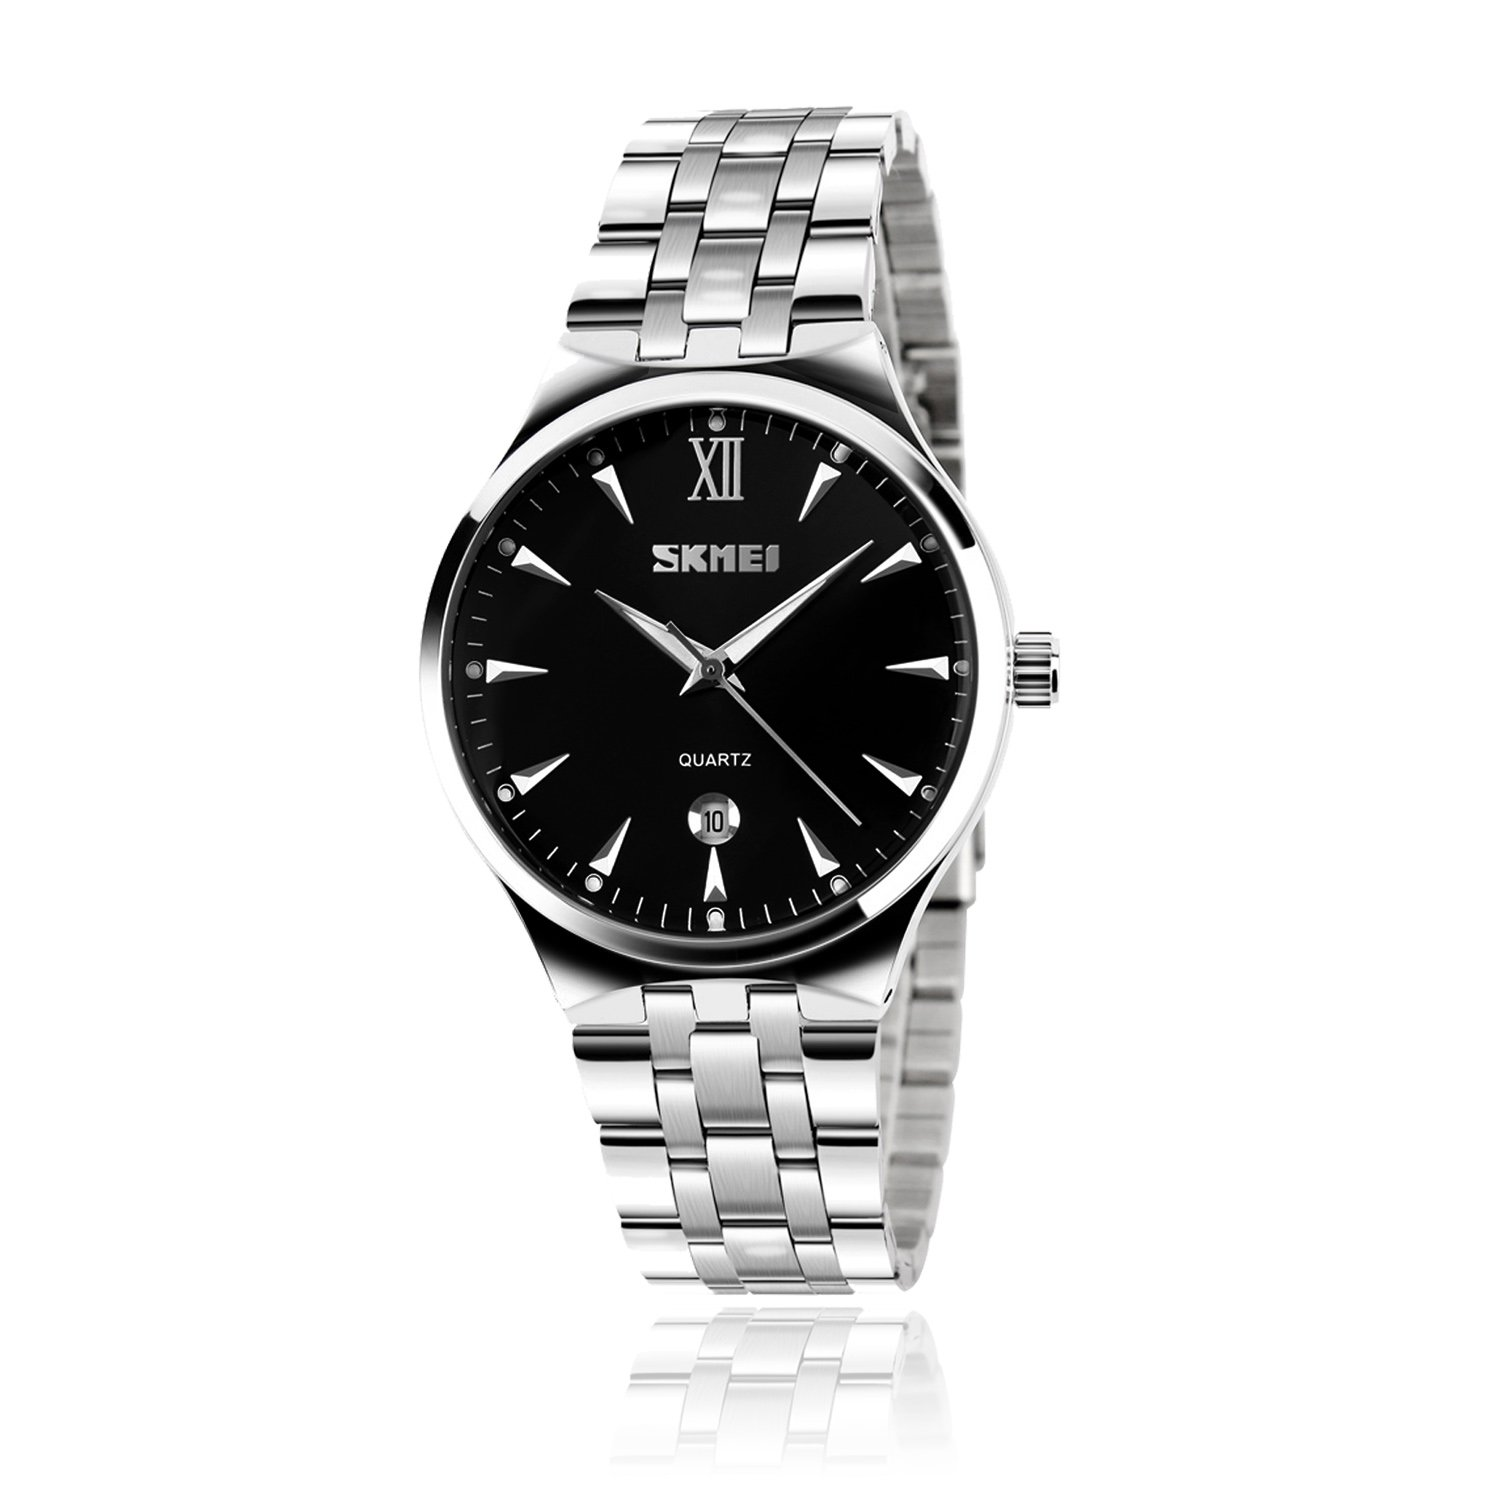 Mens Watch, Unique Quartz Analog Dress Business Casual Watches Stainless Steel Band Wrist Roman Numeral Waterproof Watch, Classic Calendar Date Window - Black by cofuo